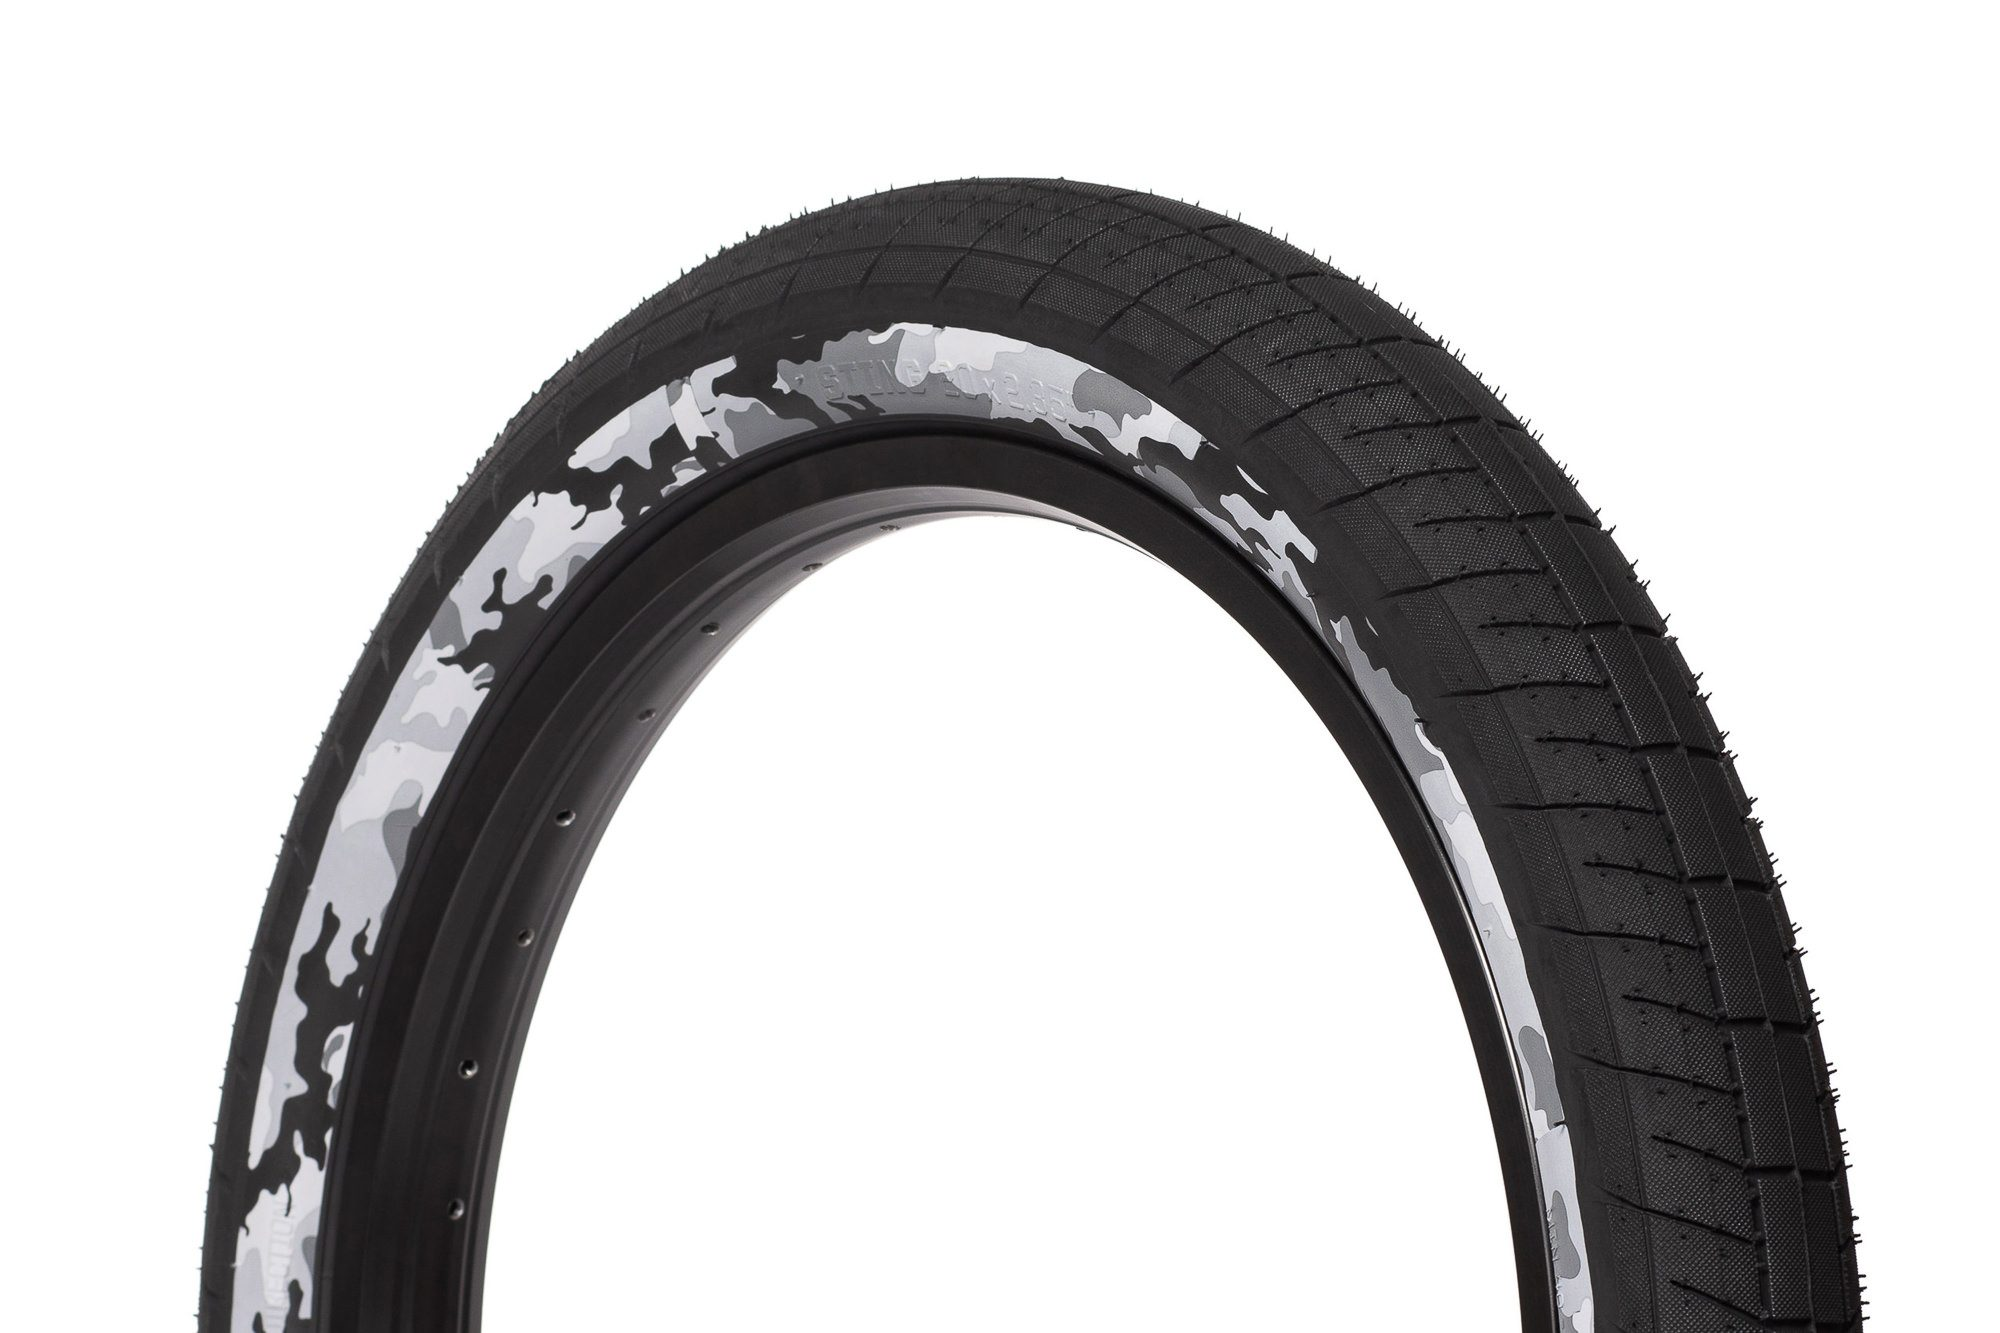 SaltPlus_Sting_tire_black_snow_camo-05